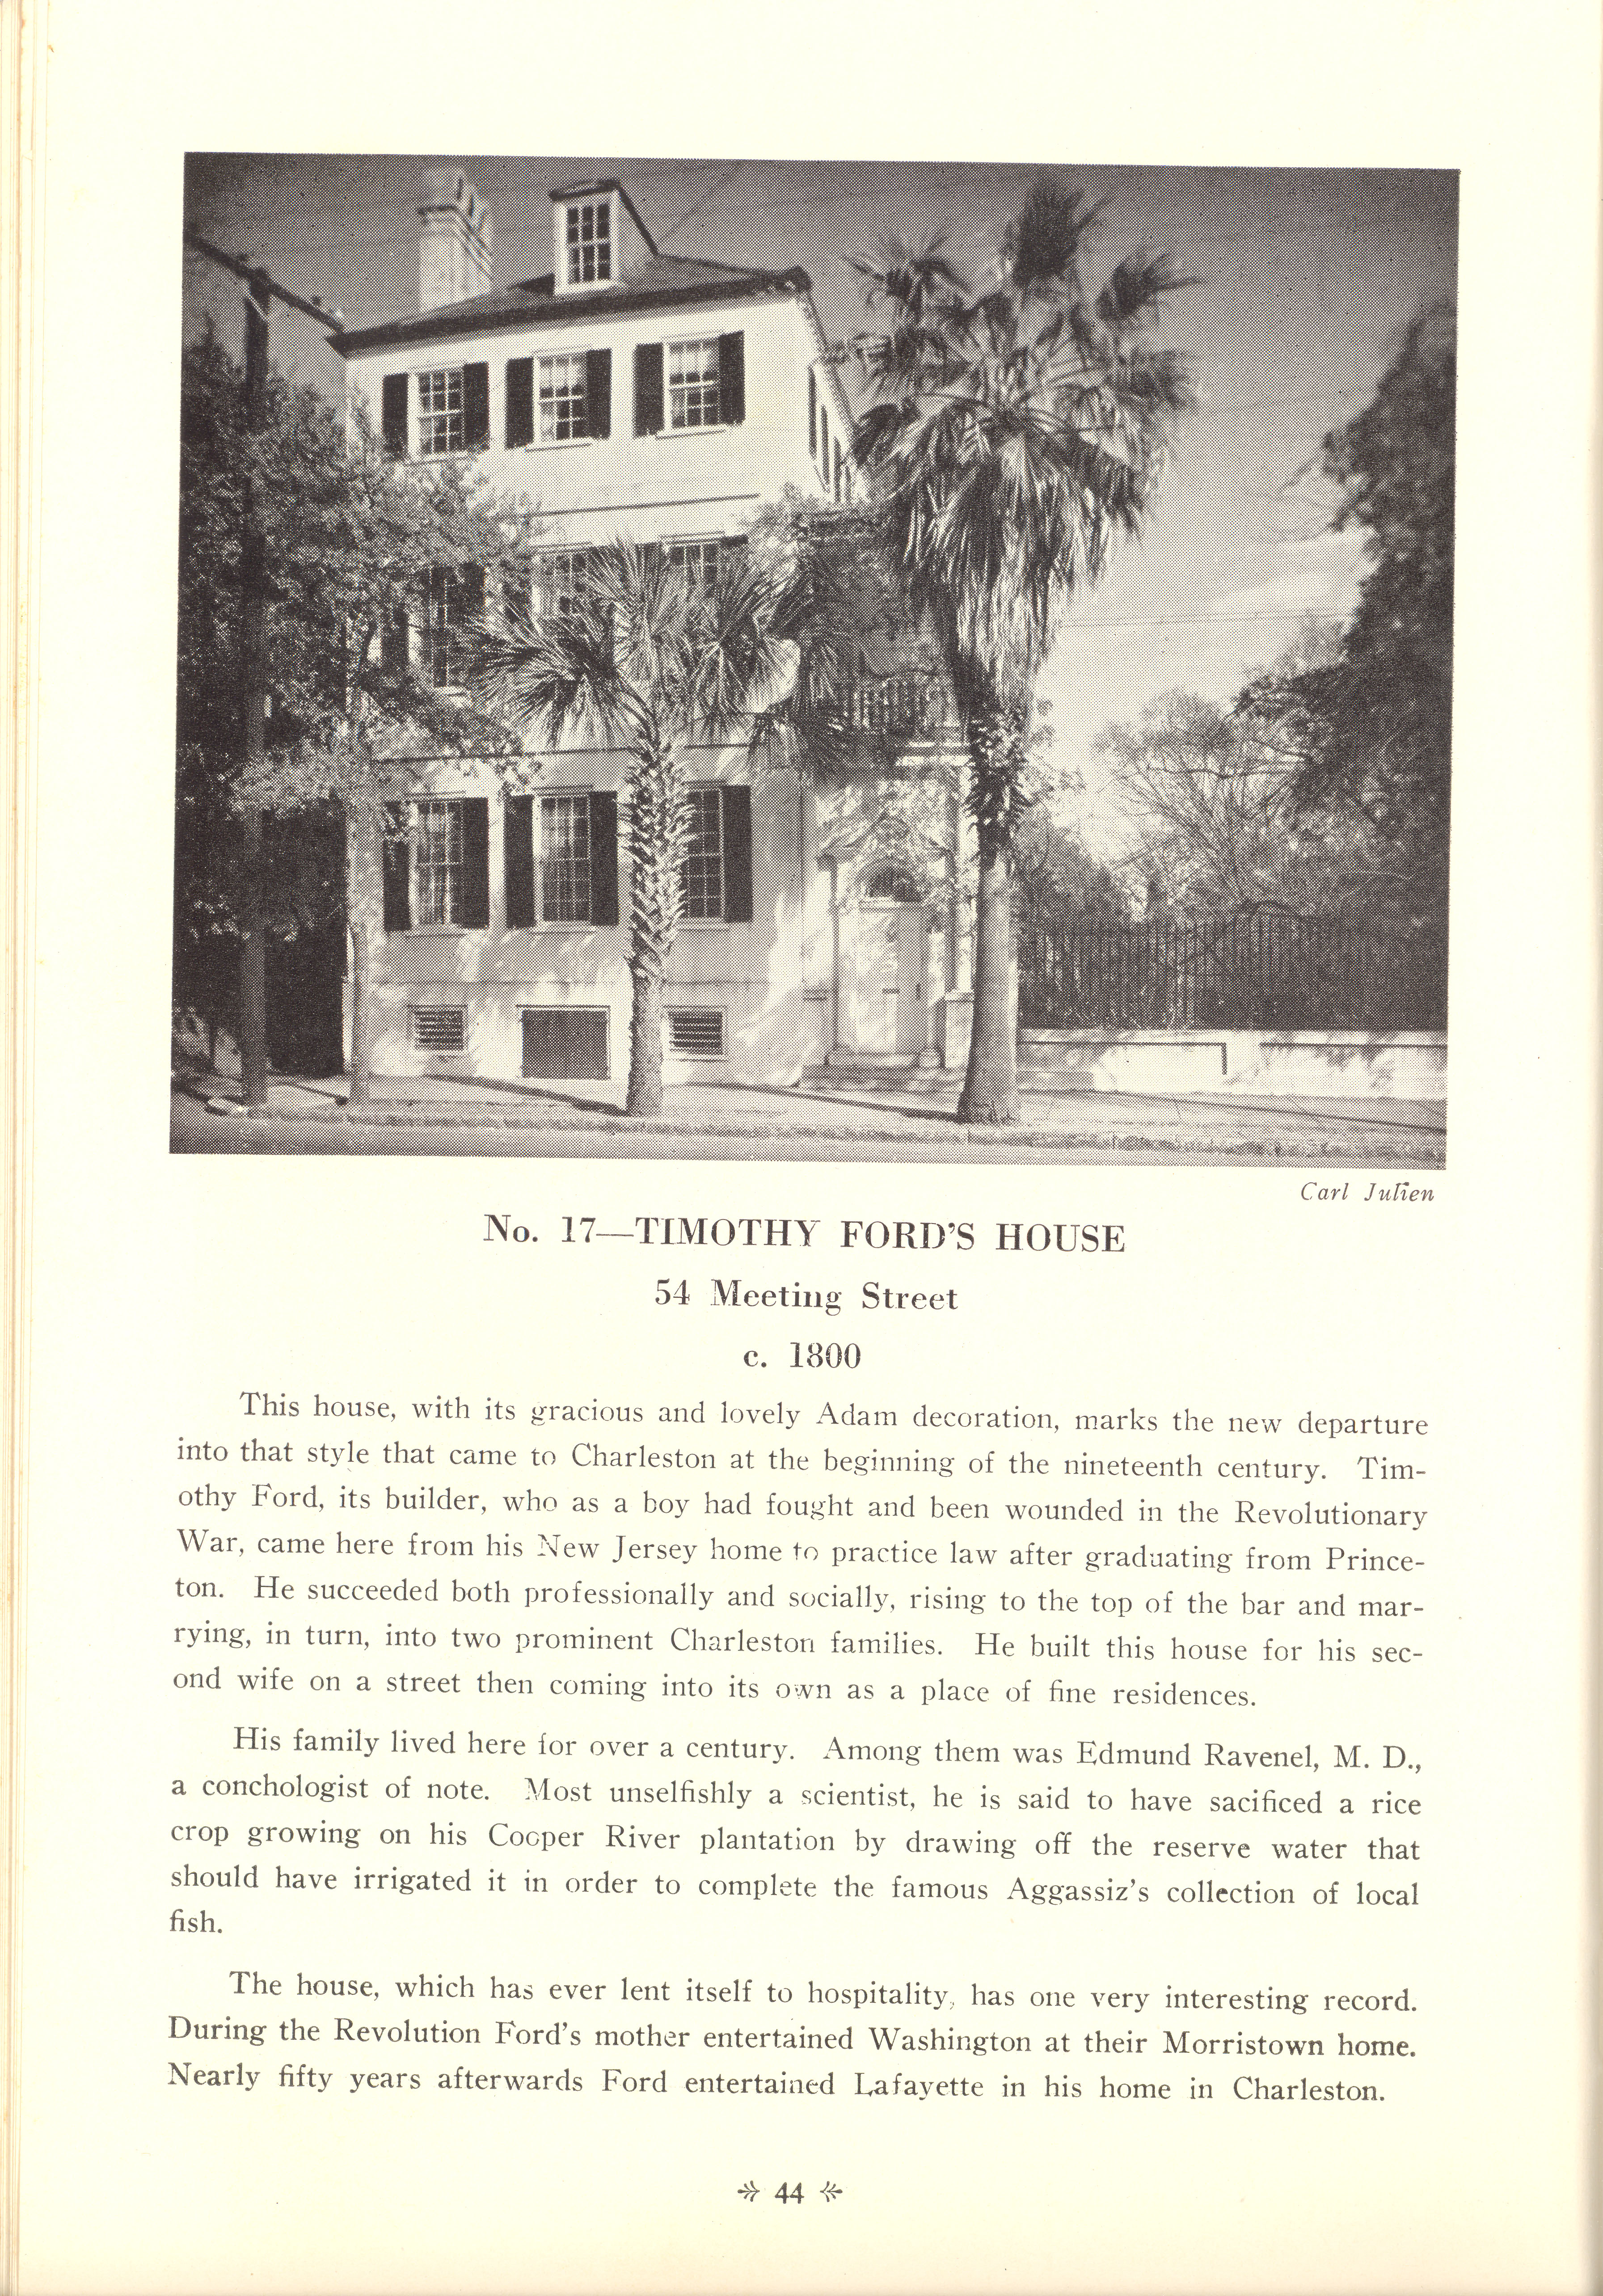 Page 44:  No.17 - Timothy Ford's House, 54 Meeting Street, c. 1800